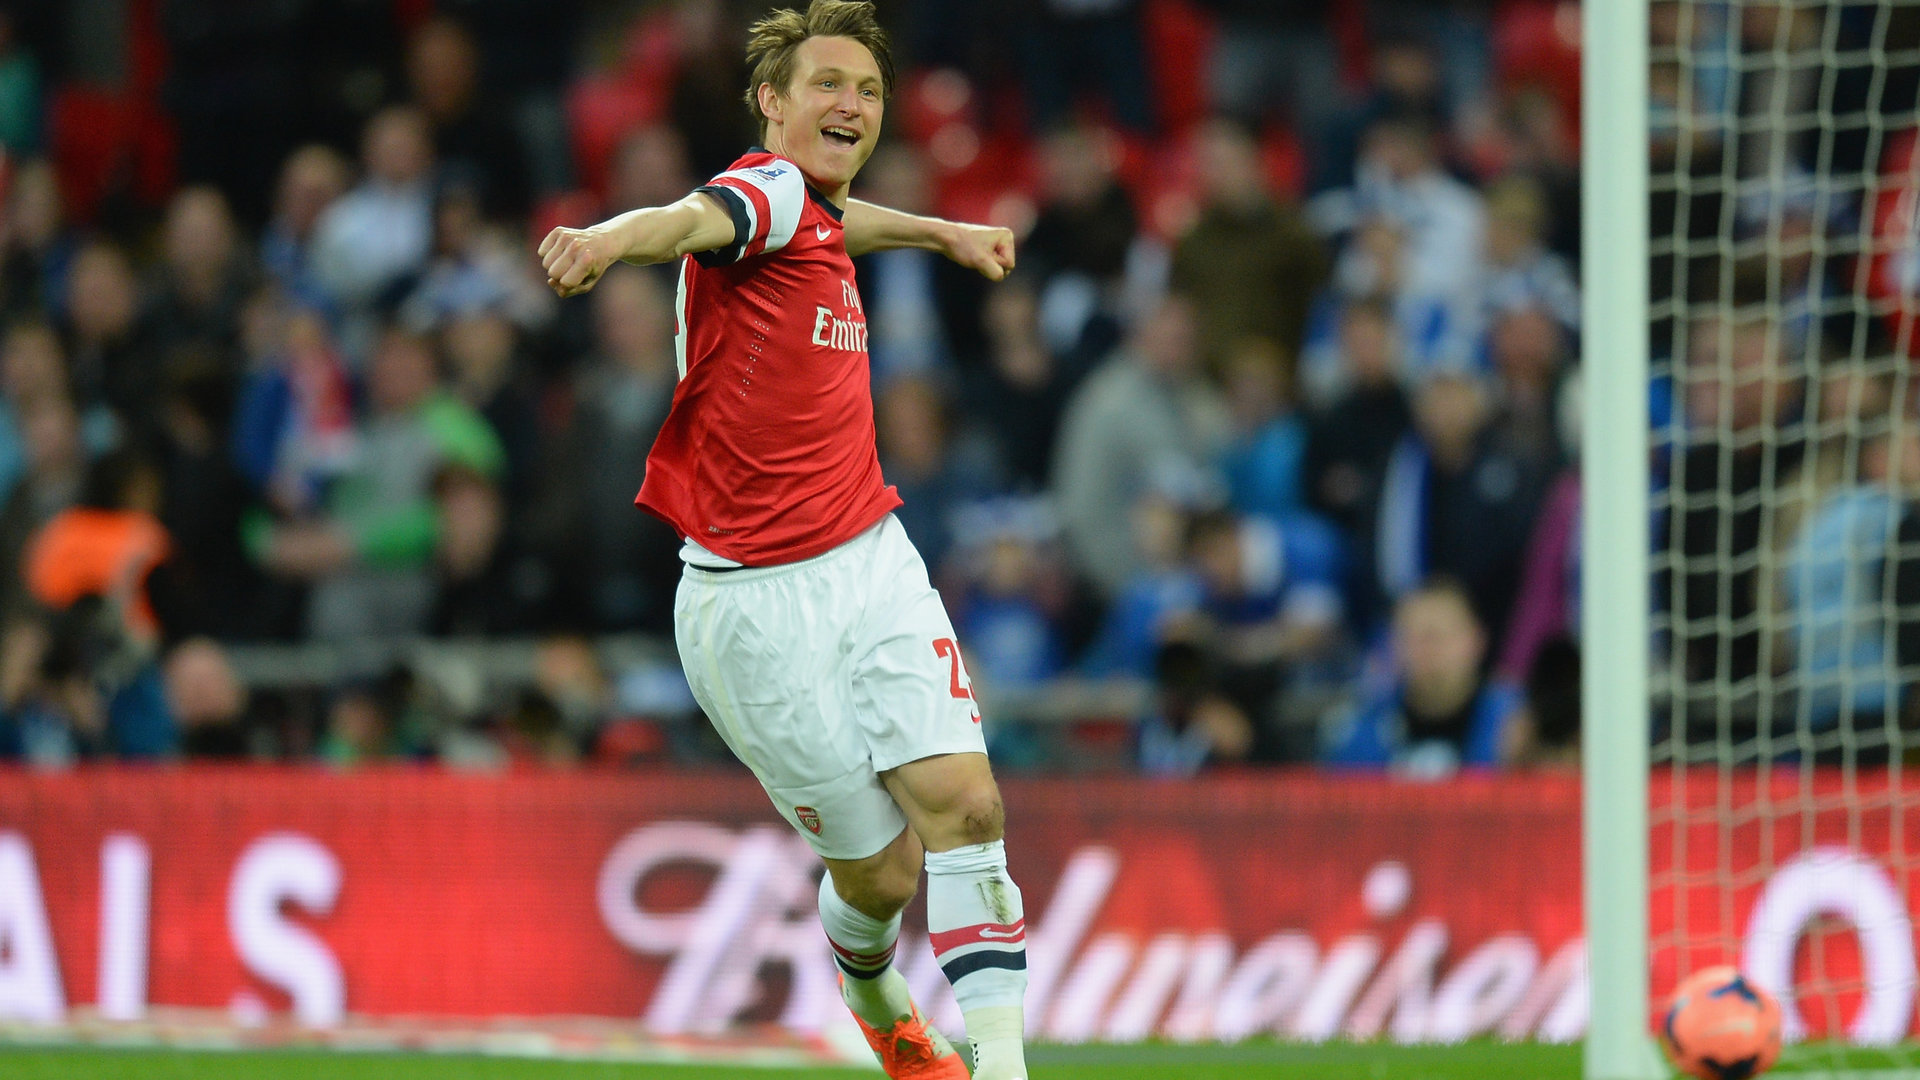 'I walked in, won a trophy and walked out' - Kallstrom opens up on his bizarre Arsenal loan spell